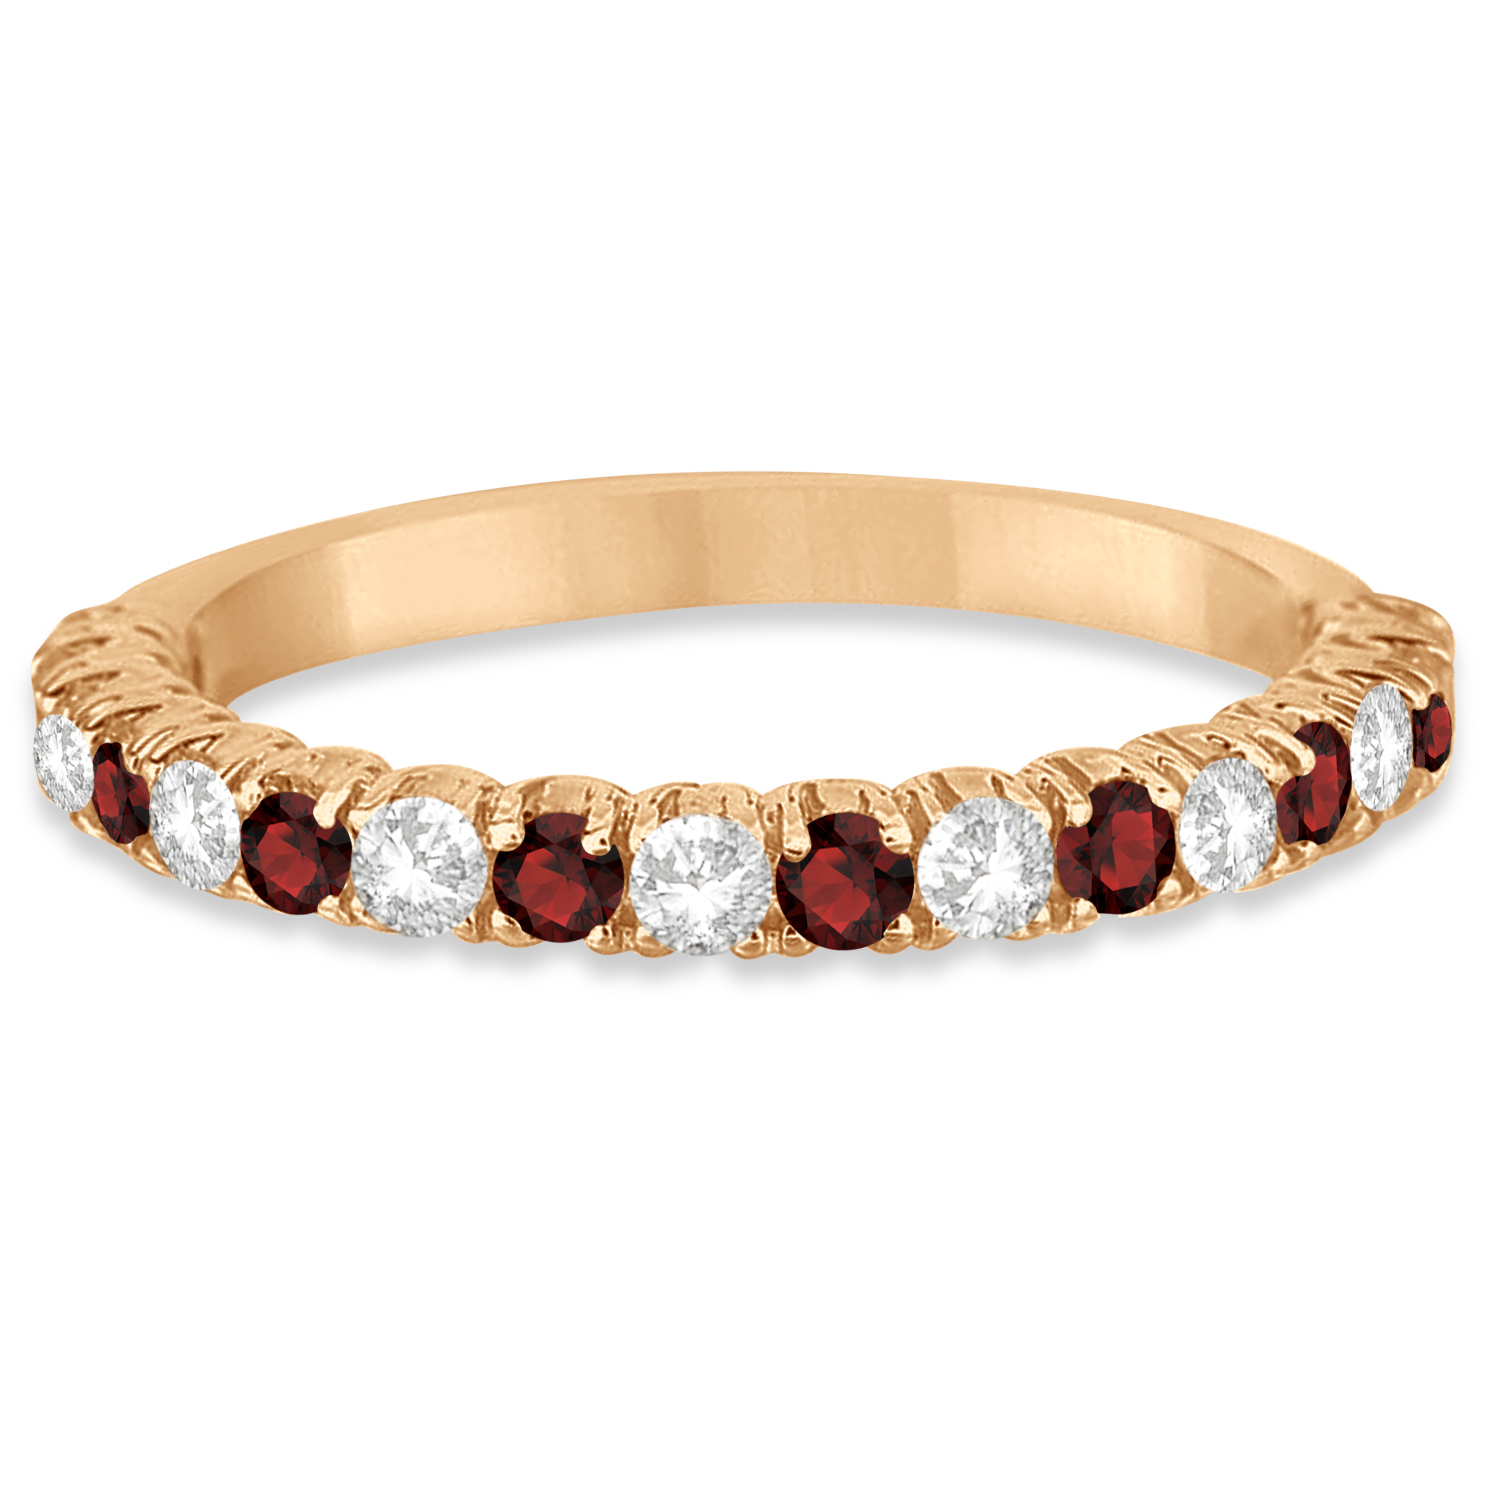 Garnet Ring Bands: Garnet & Diamond Wedding Band Anniversary Ring 14k Rose